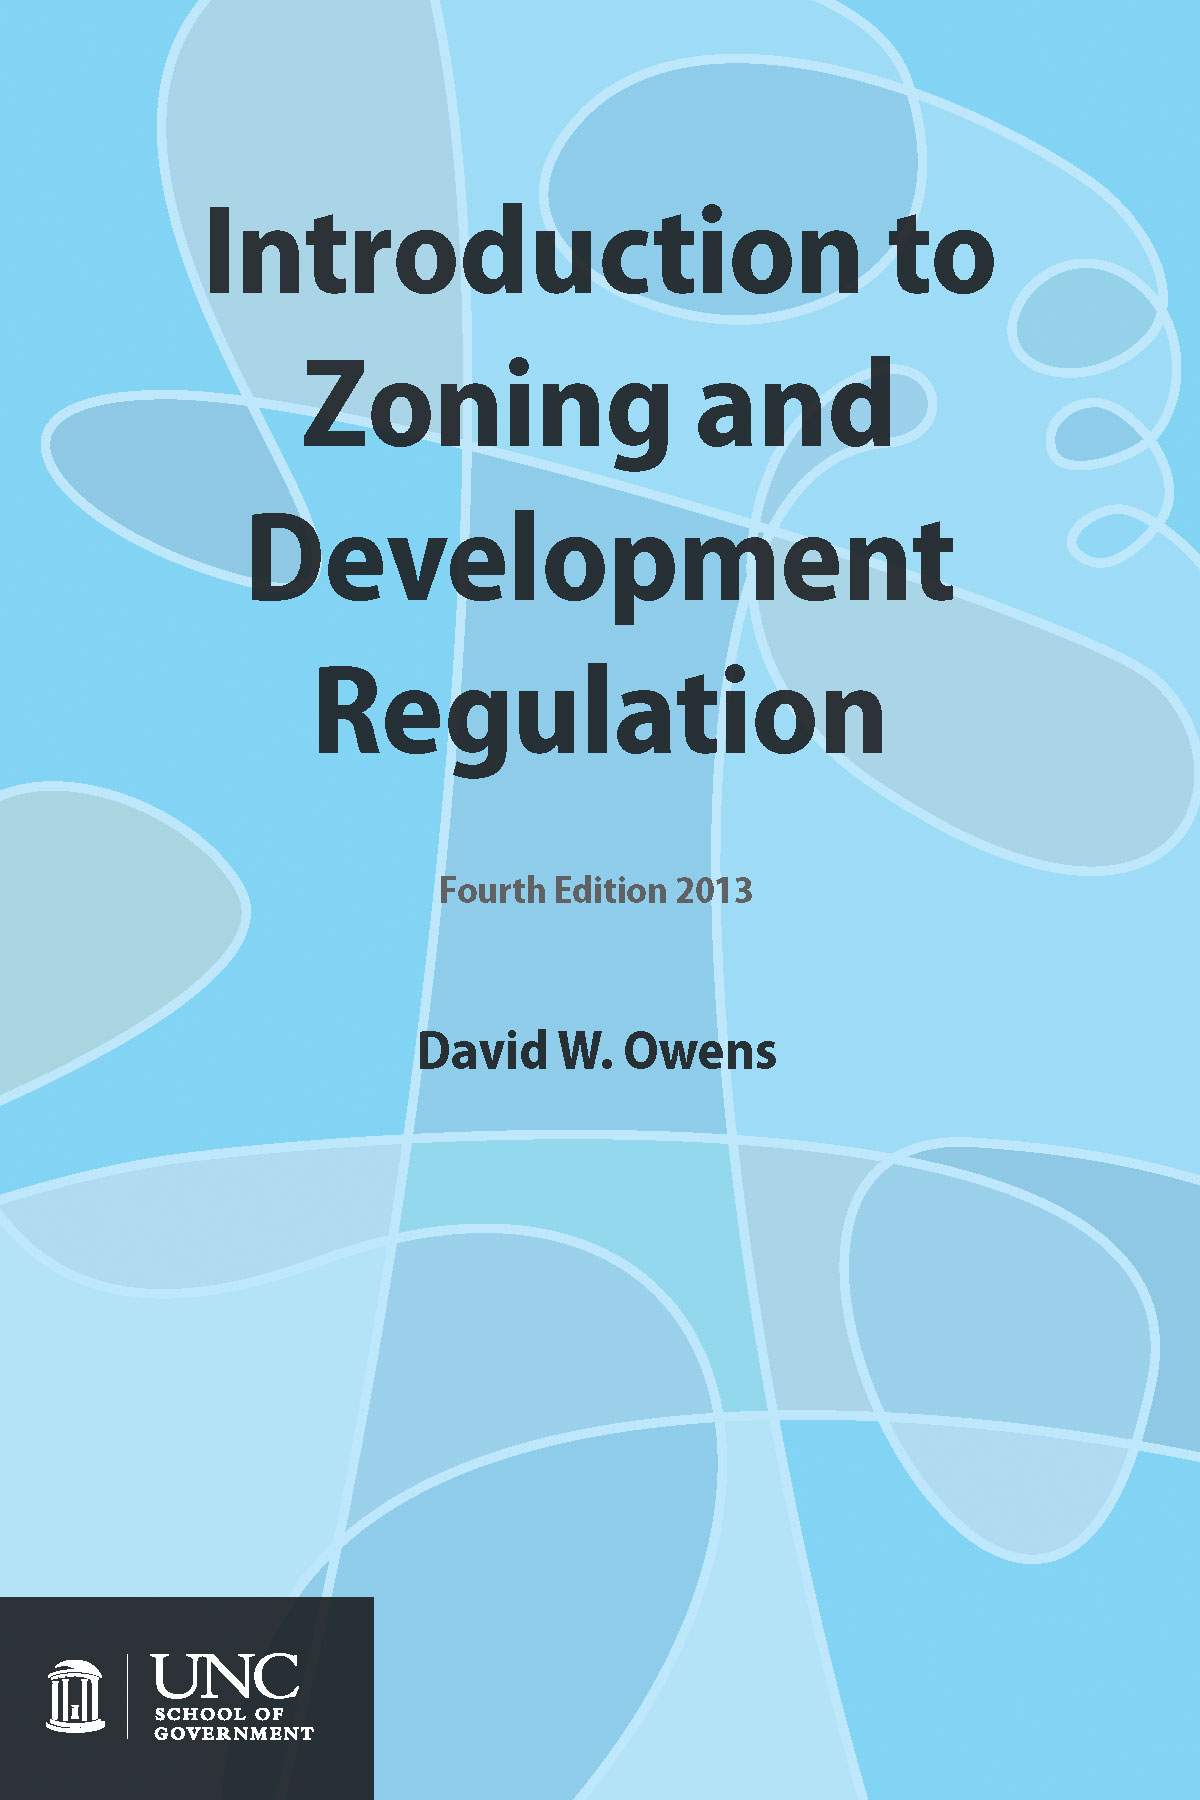 Cover image for Introduction to Zoning and Development Regulation, Fourth Edition